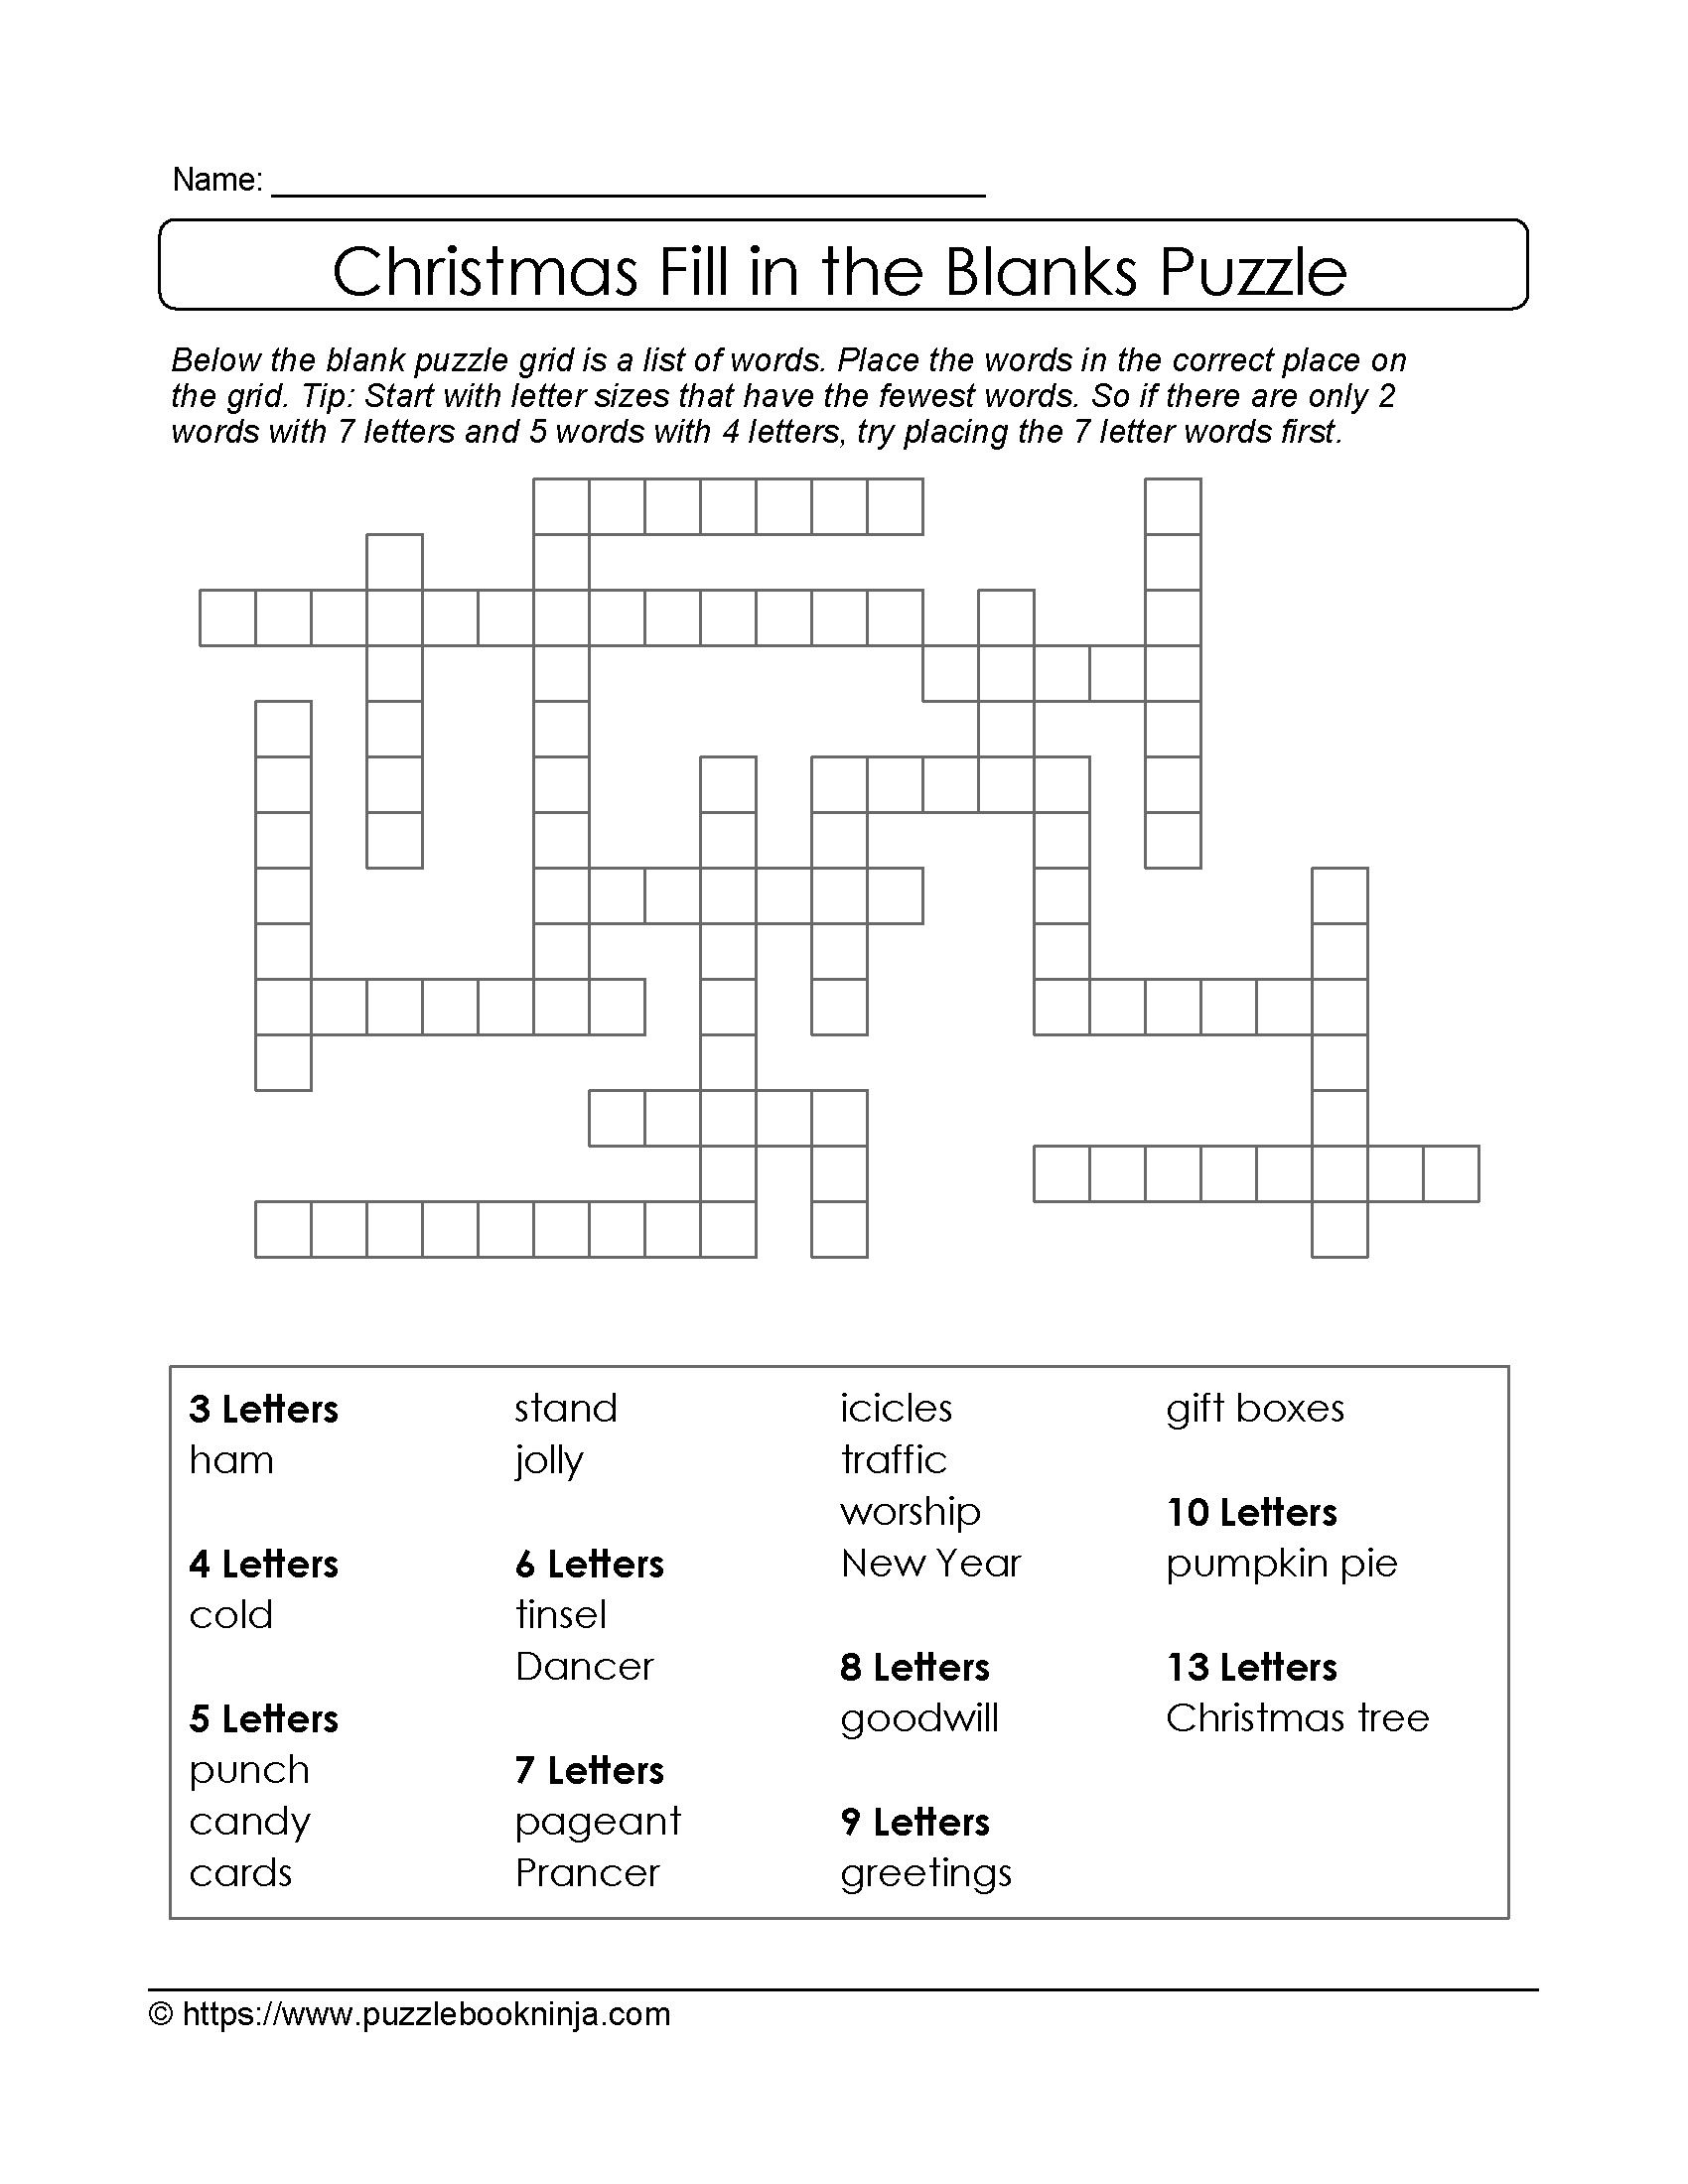 Freebie Xmas Puzzle To Print. Fill In The Blanks Crossword Like - English Language Crossword Puzzles Printable